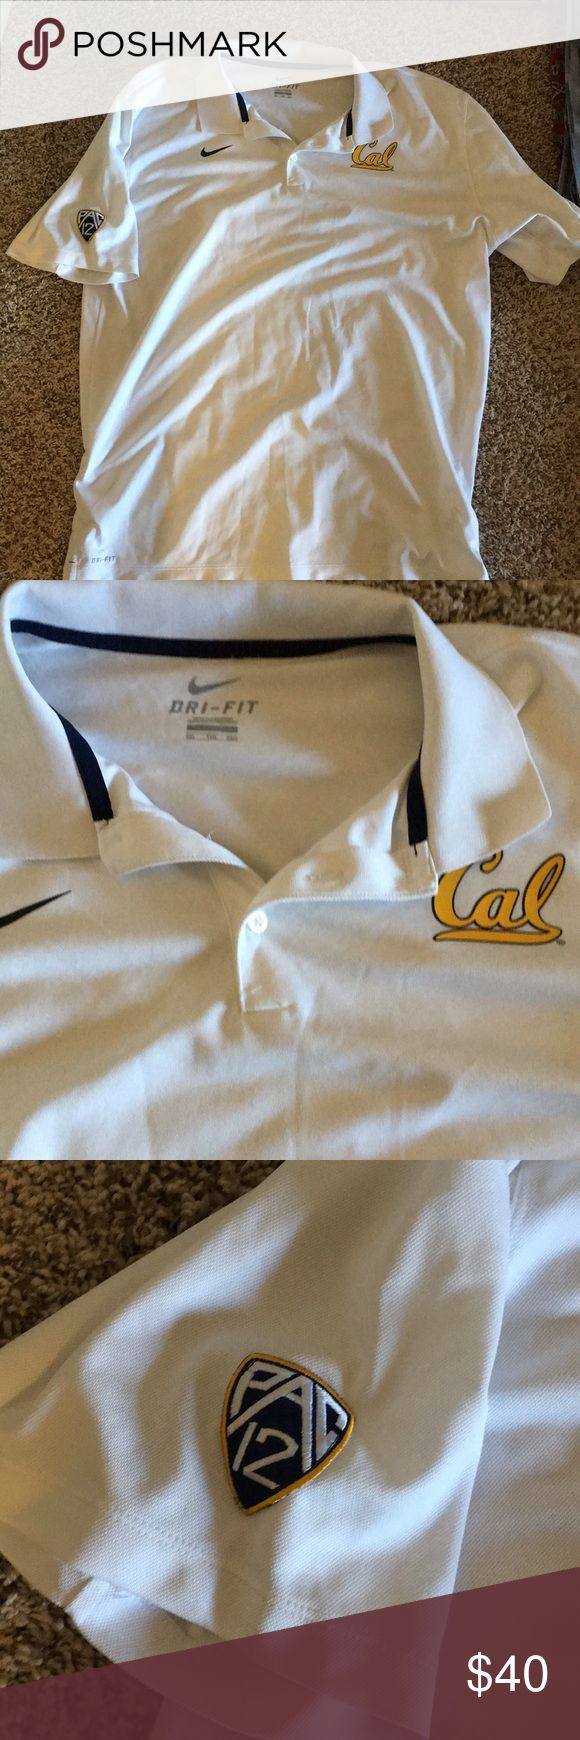 Men's white polo Selling men's white Cal university pac 12 school polo! Used but in good shape. Only worn once. Size XXL Nike Shirts Polos